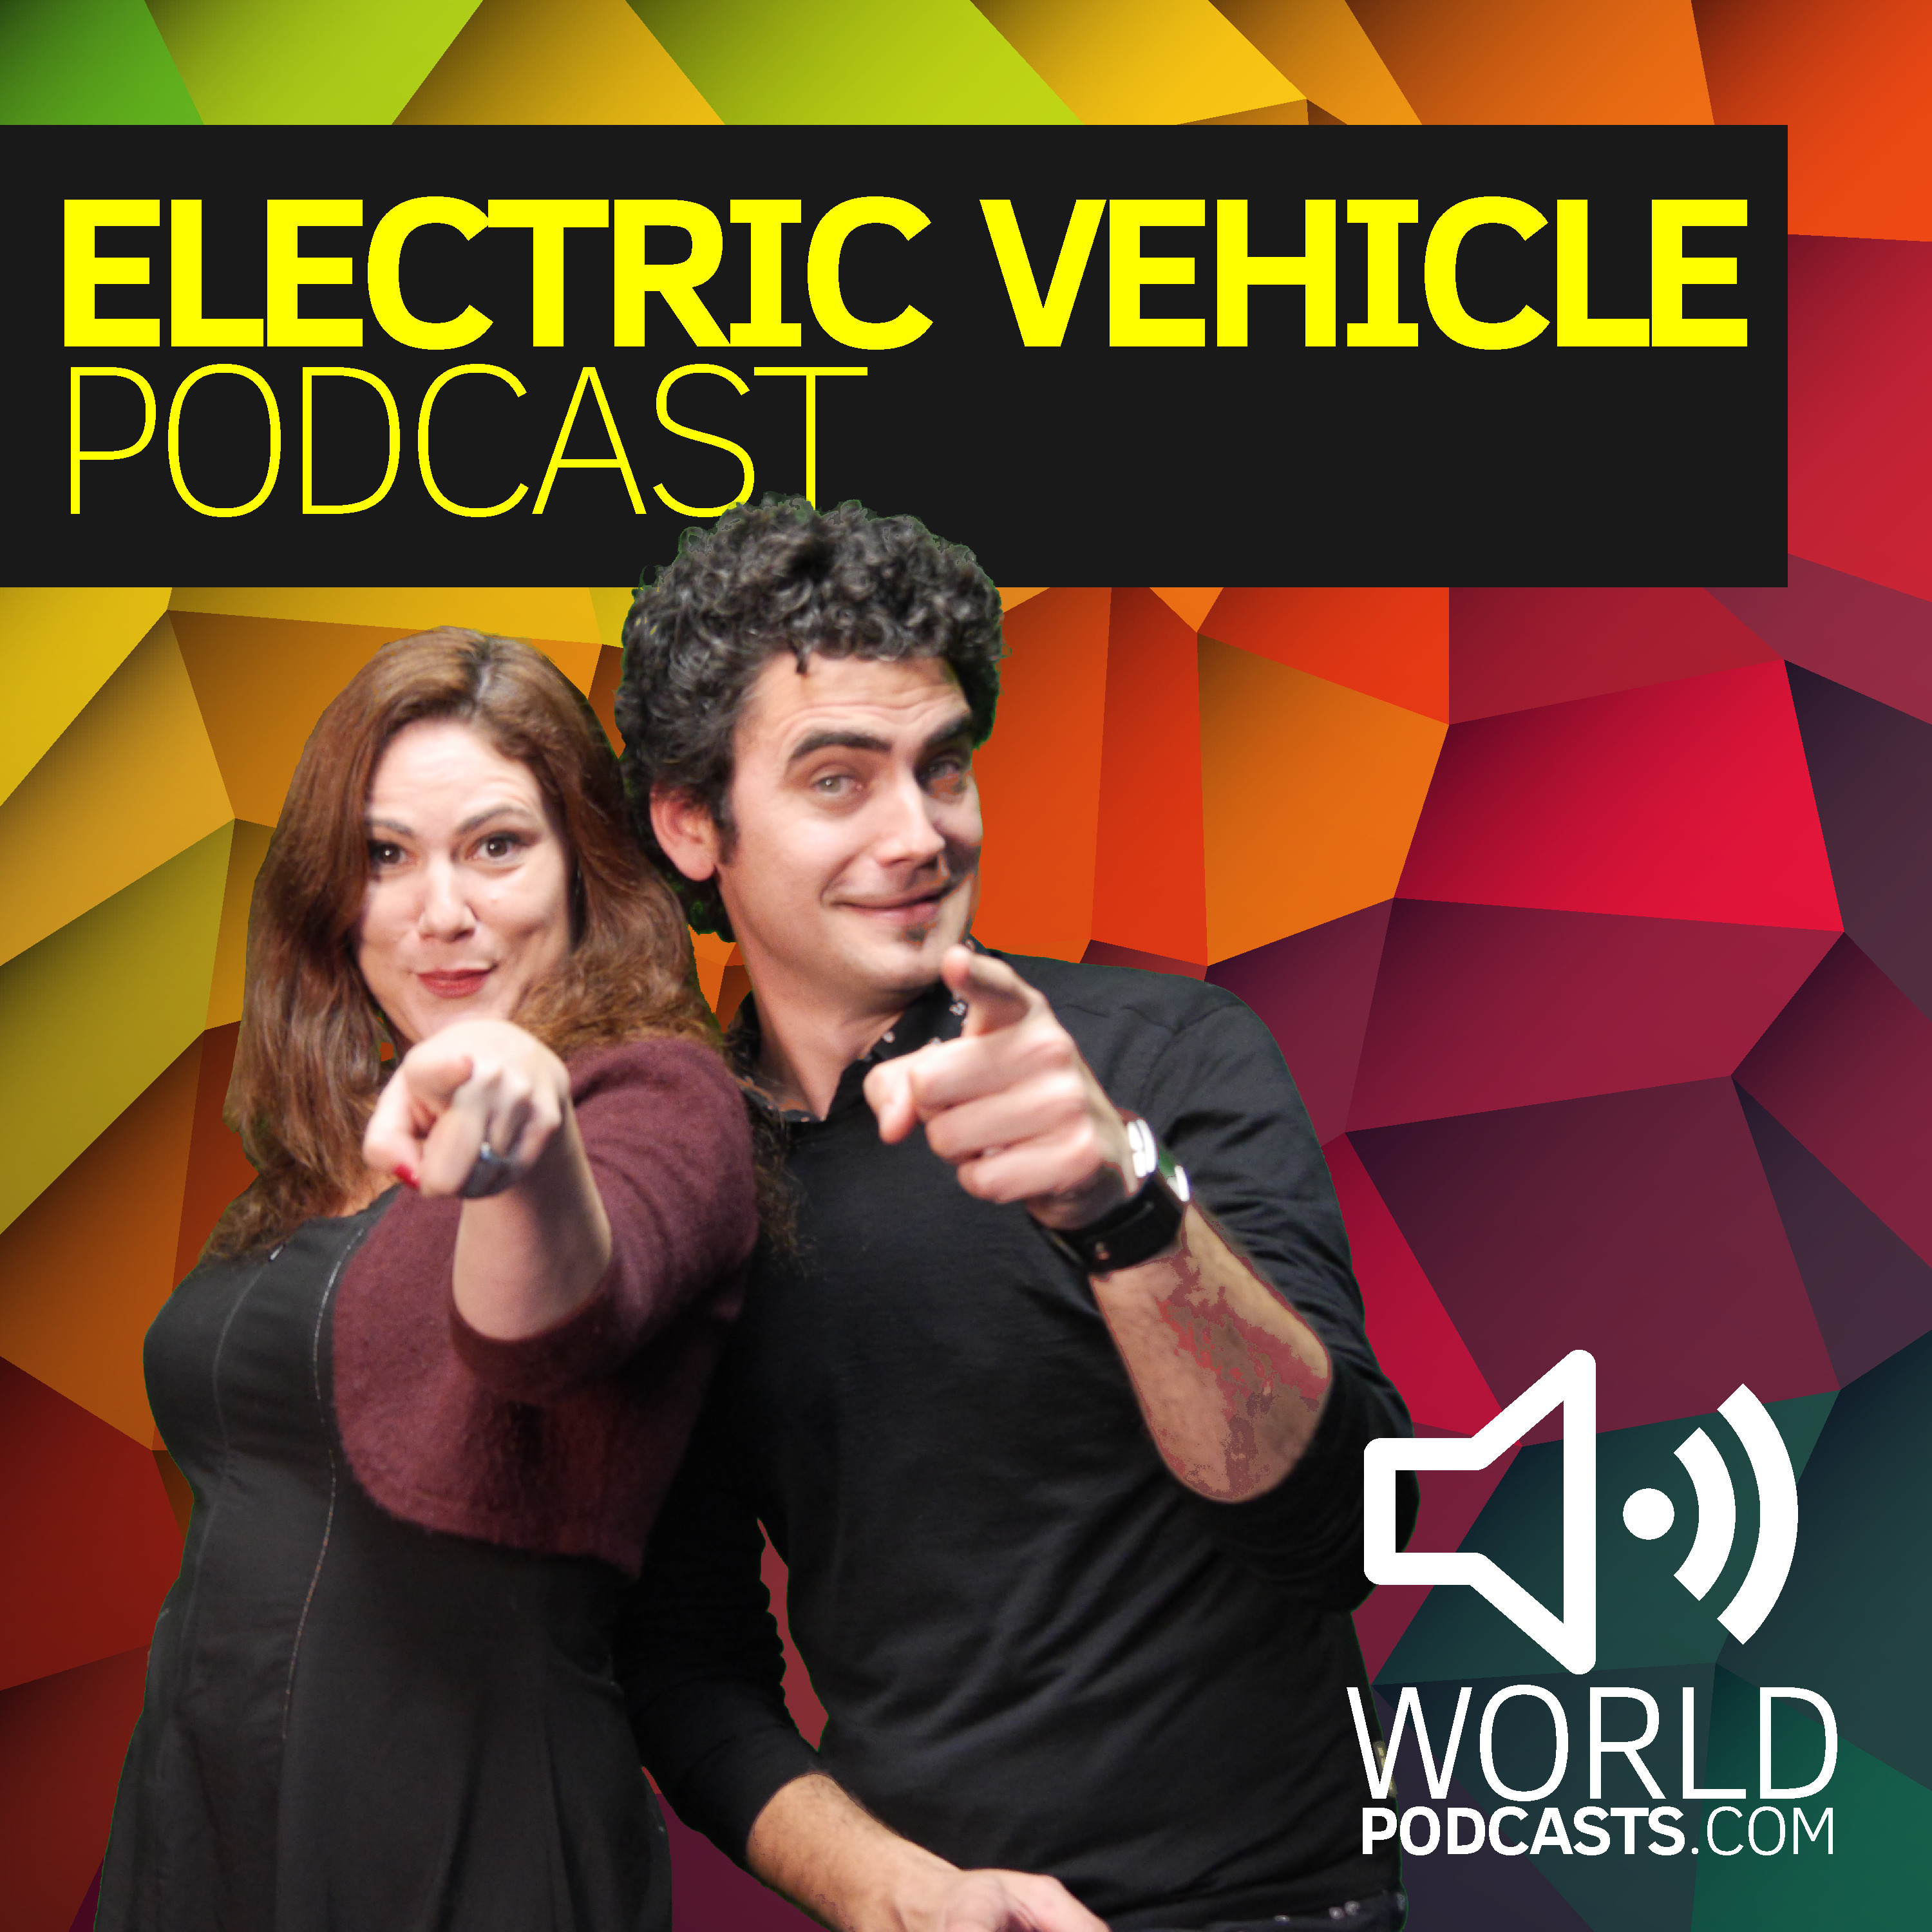 EV Podcast: Worlds First Electric Tug Boat